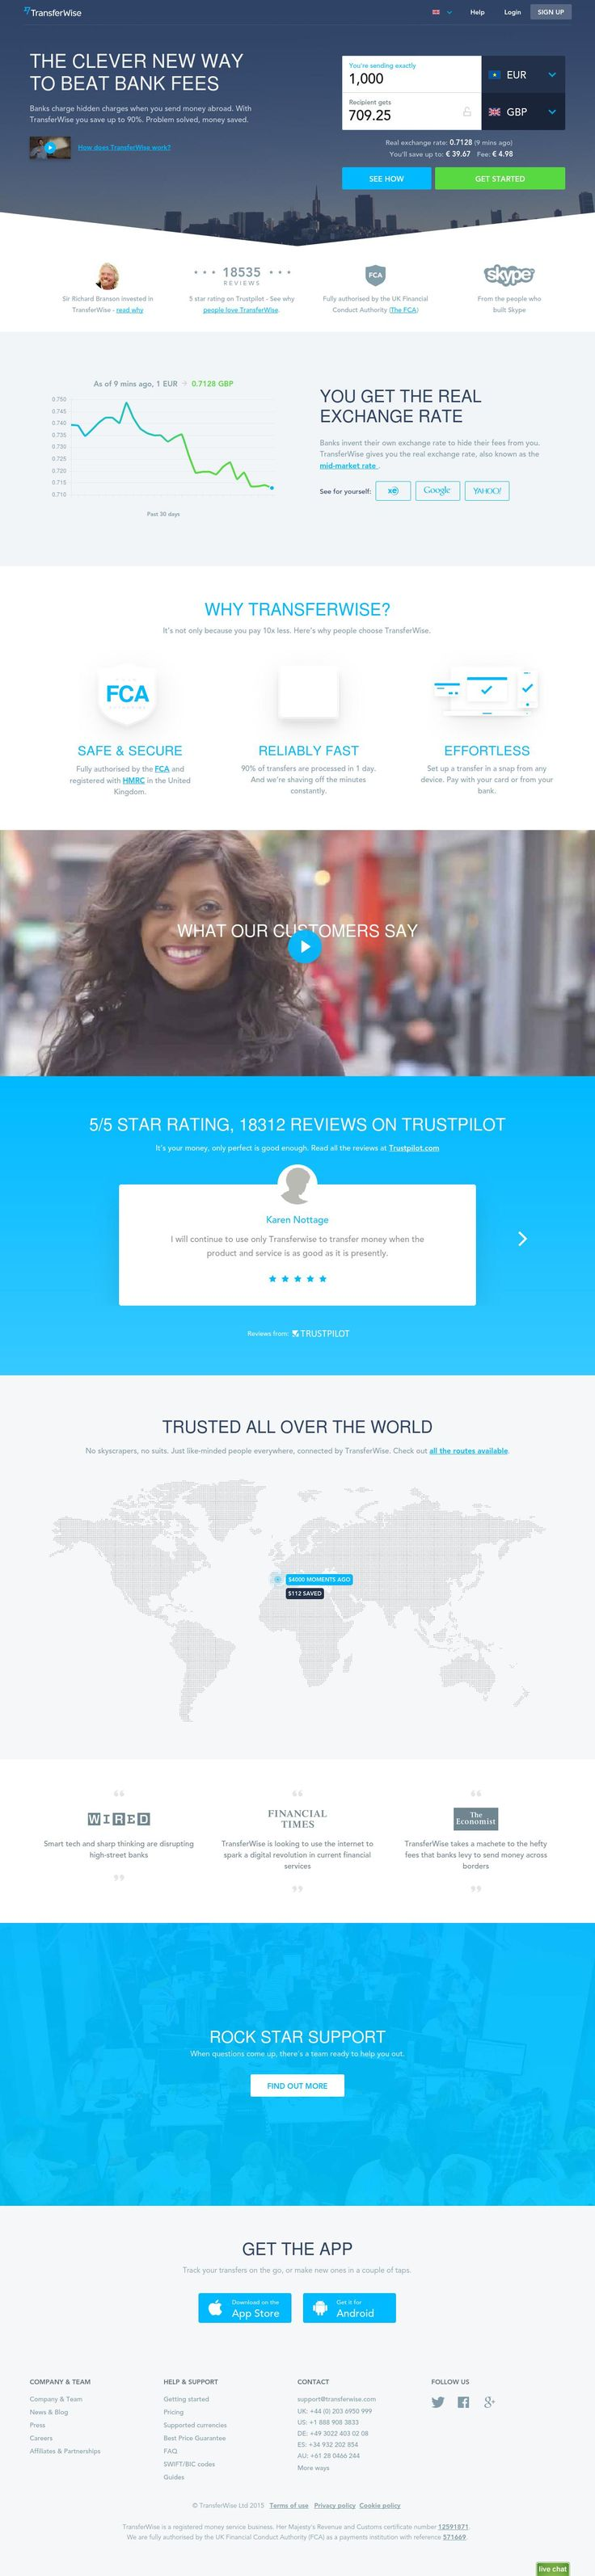 TransferWise Review Web design, Transfer website